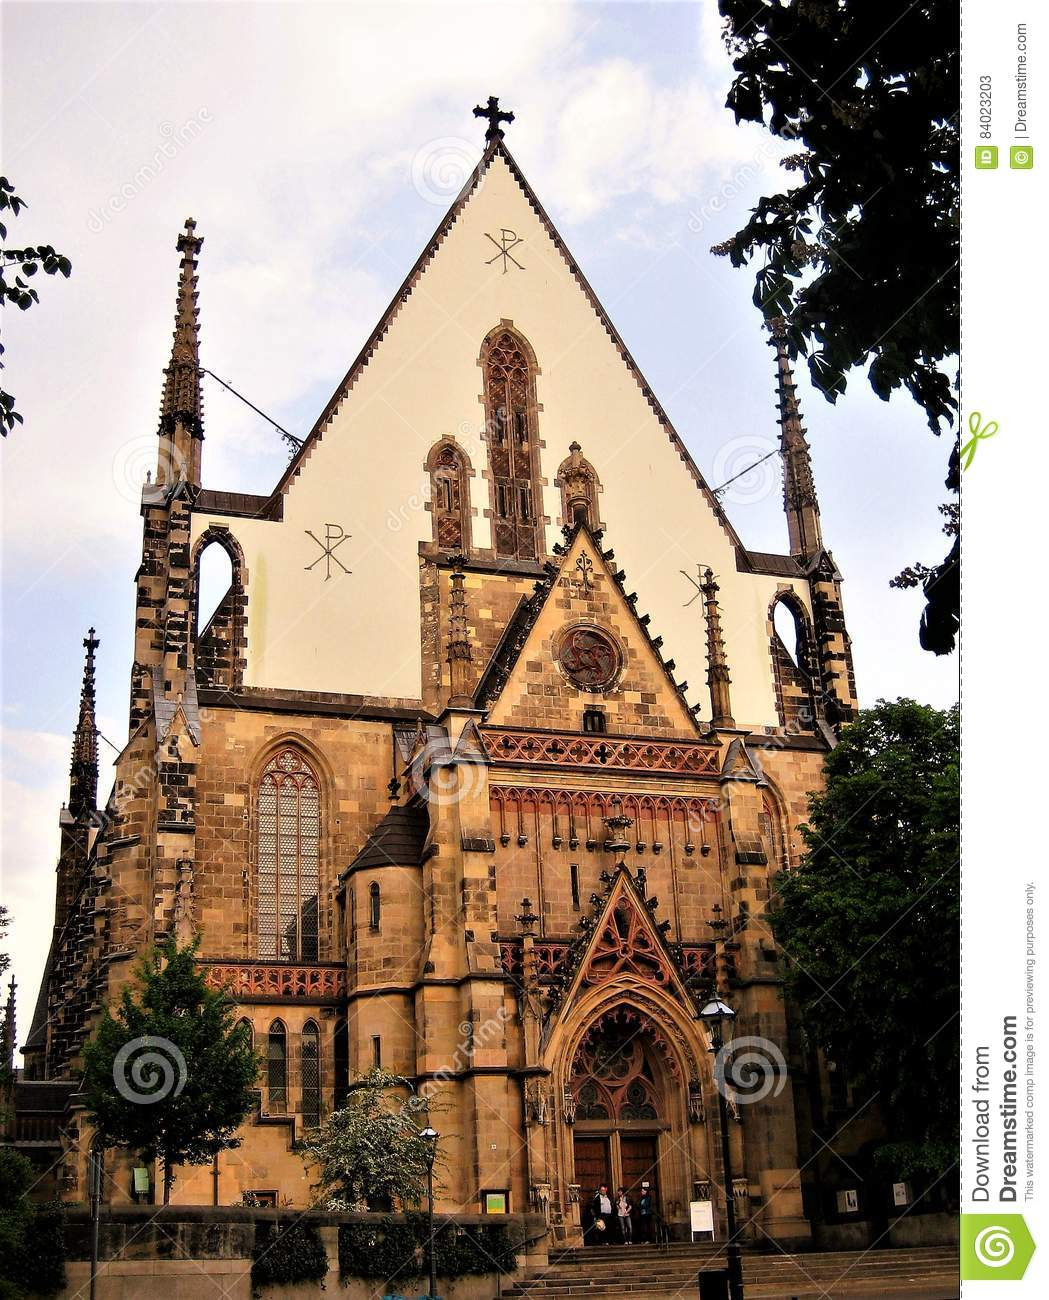 Macro Photo Of An Architectural Religious Buildings St Thomas Church In Leipzig In Germany Stock Image Image Of Famous Advertising 84023203